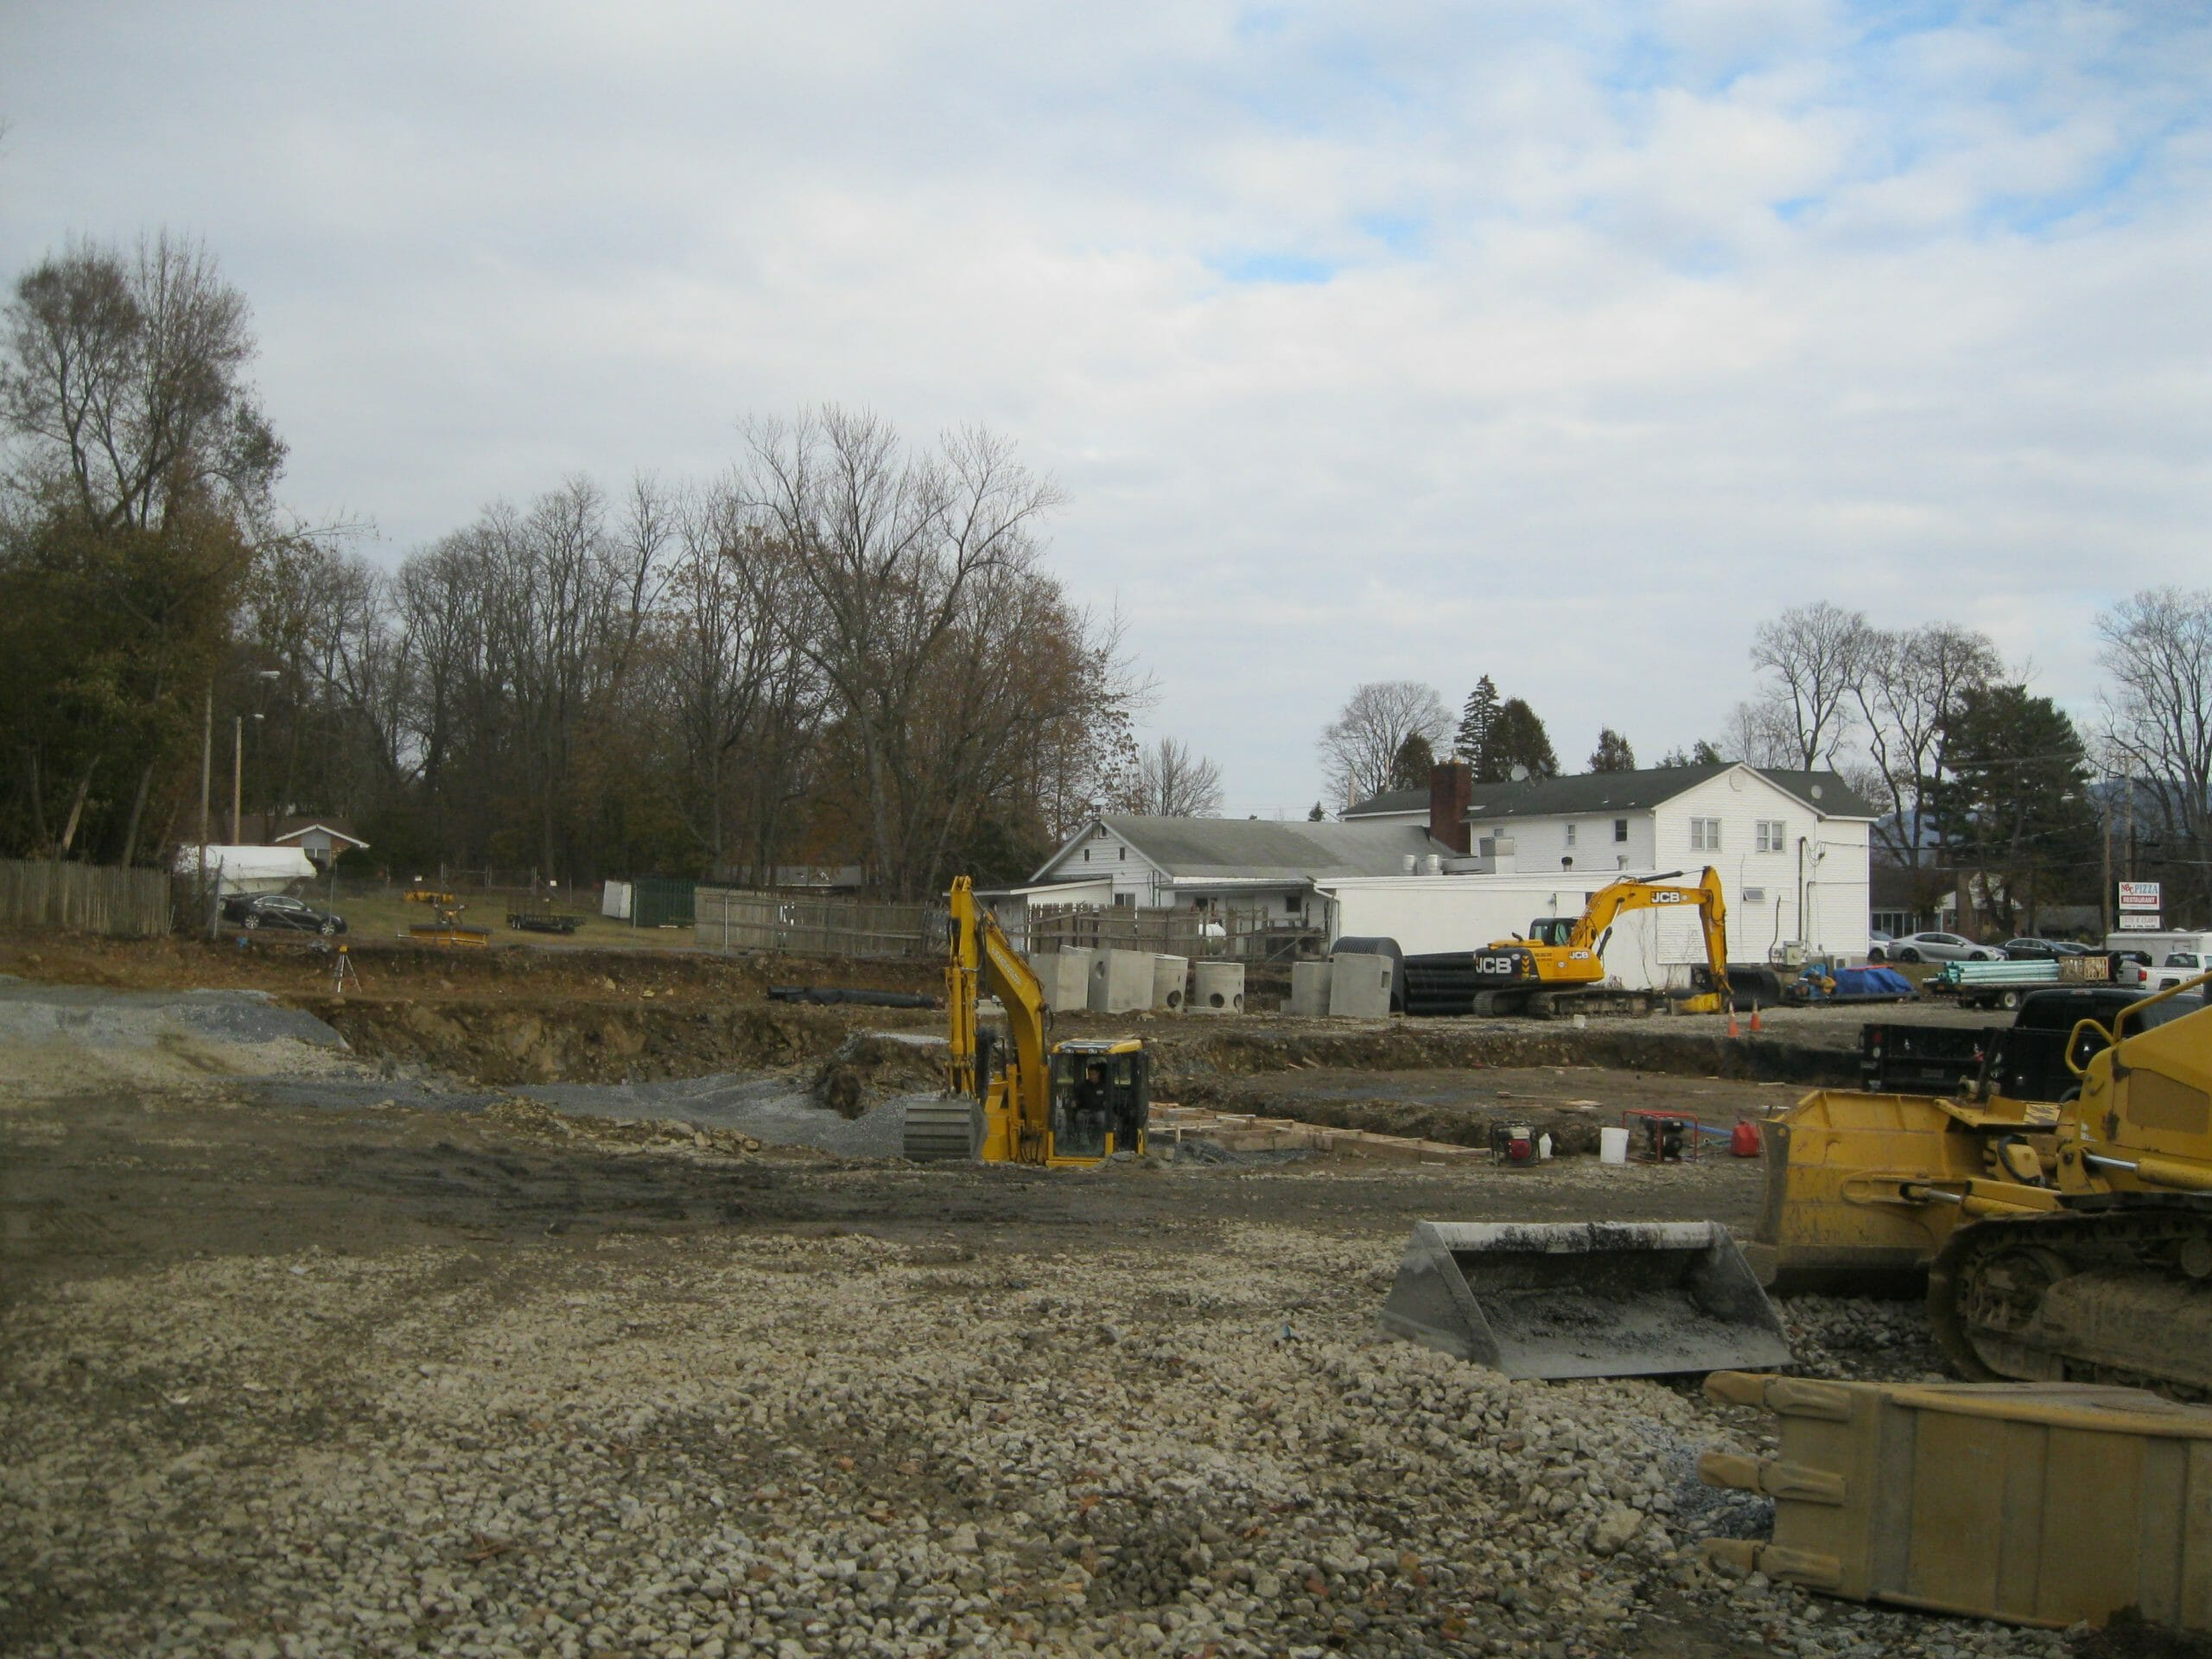 Heavy machinery working on lot